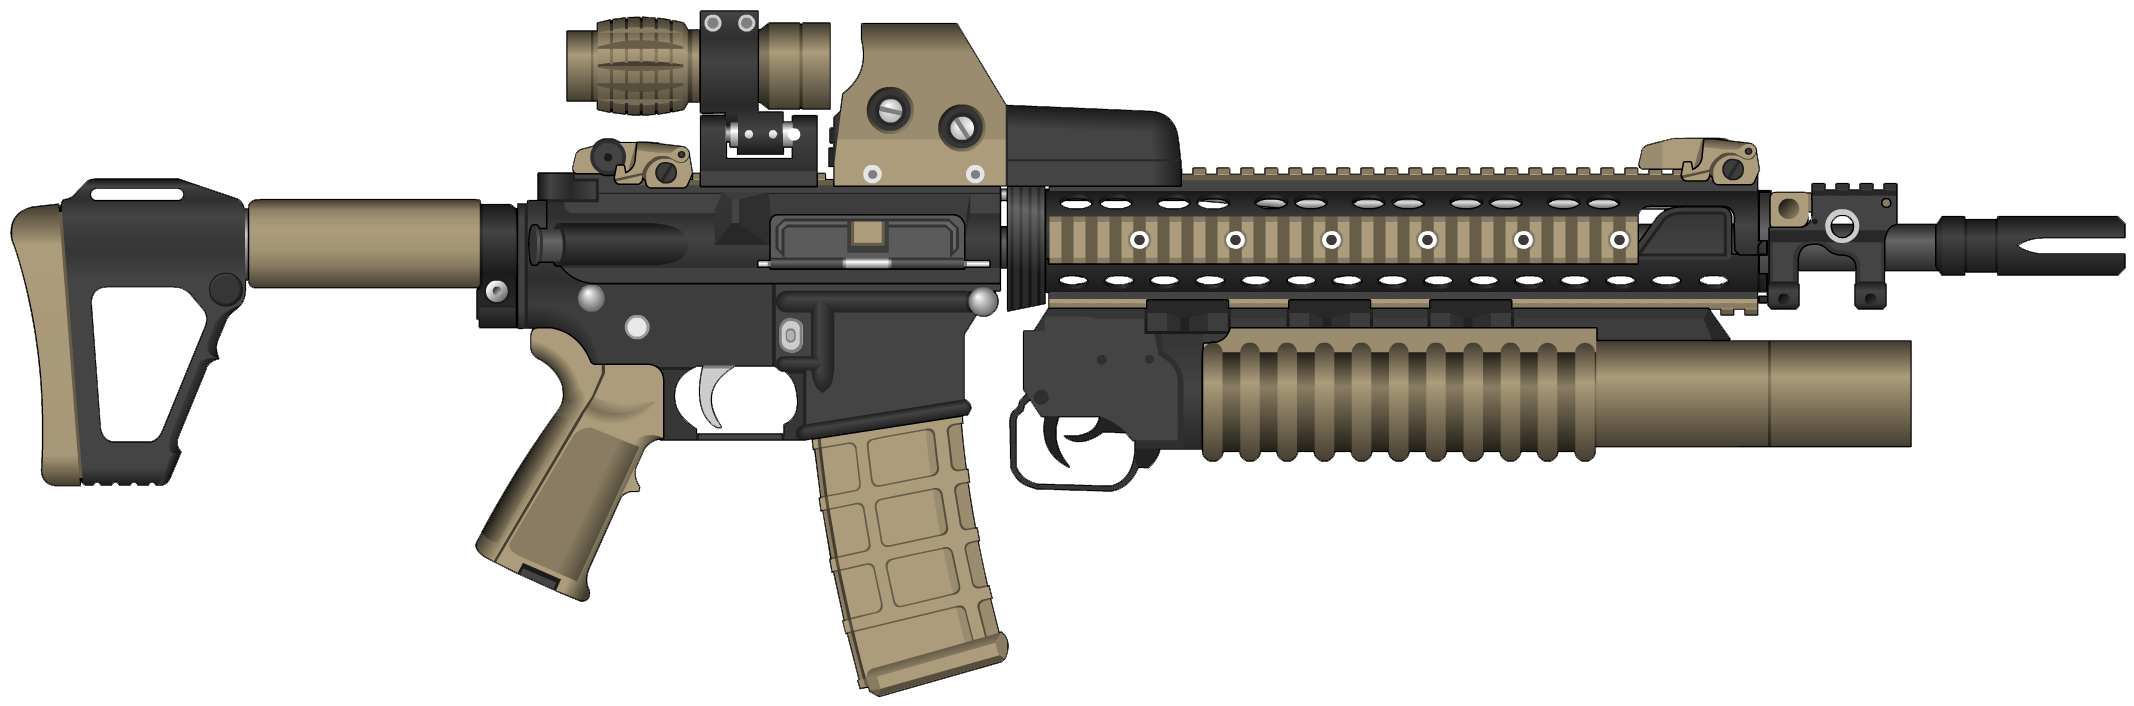 Download Assault Rifle Clipart PNG Image for Free.